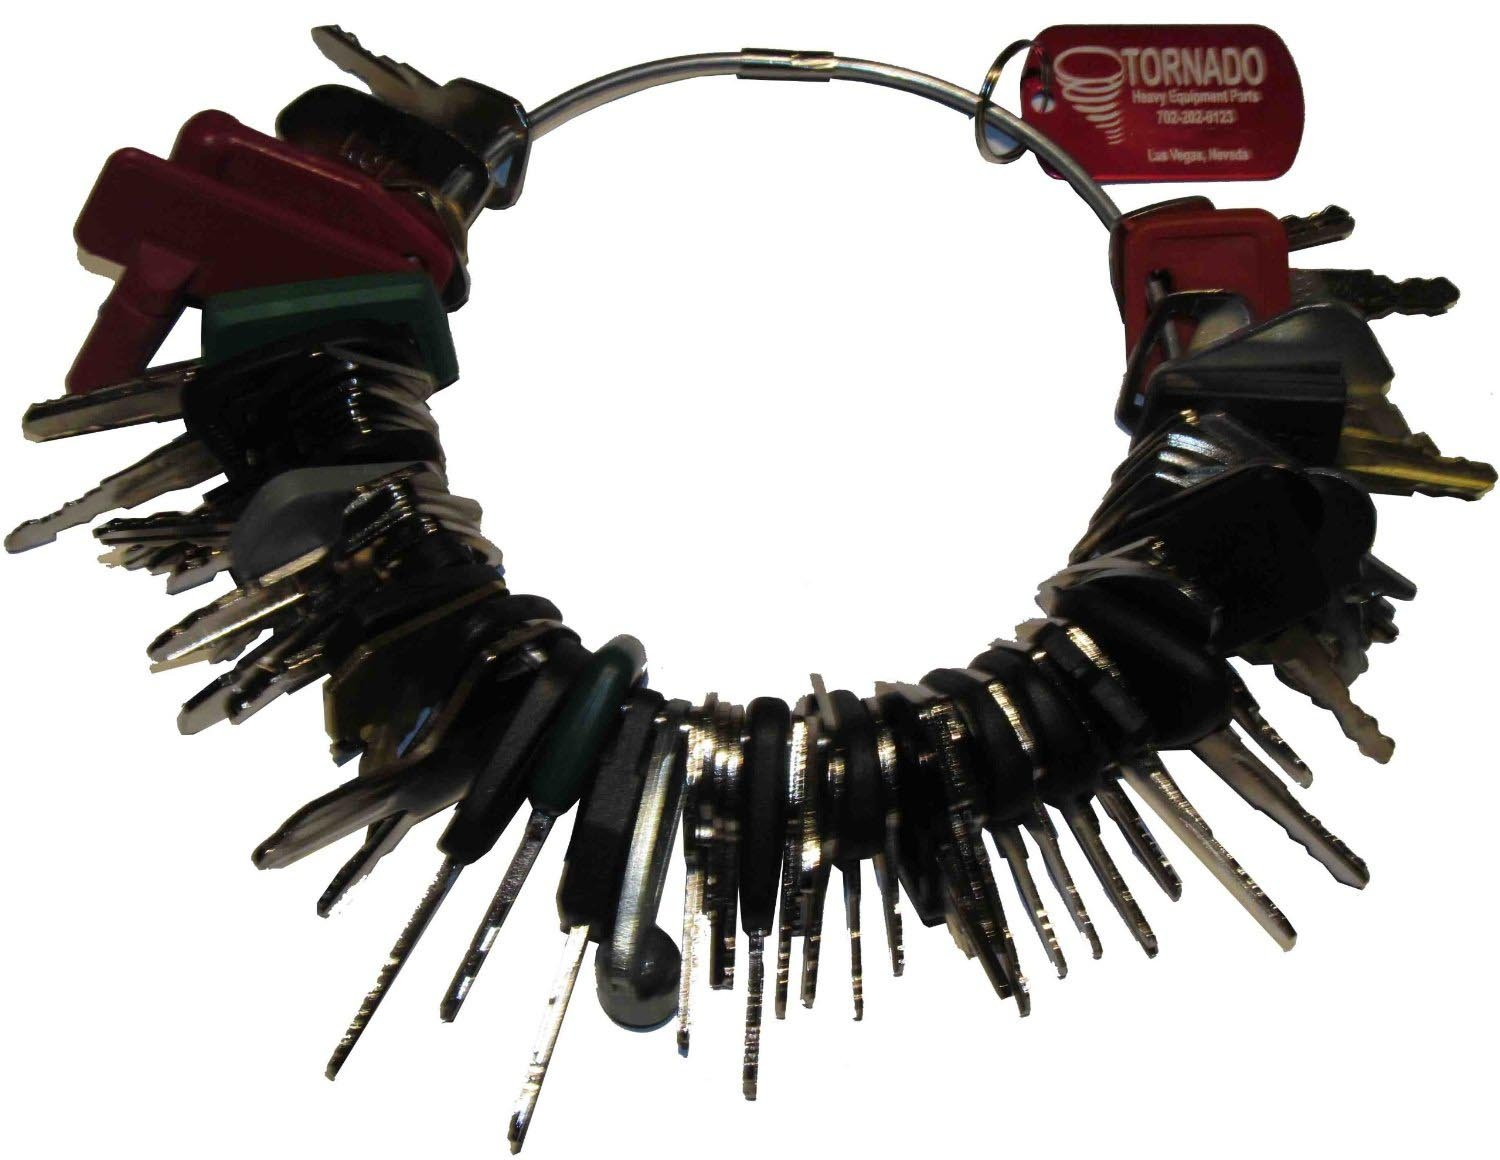 64 - 80 CONSTRUCTION IGNITION KEY SETS - Comes in sets of 64, 67, 70, 80 for backhoes, tools, case, cat, etc. See product description for more info. TORNADO HEAVY EQUIPMENT PARTS. (67 Key Set)